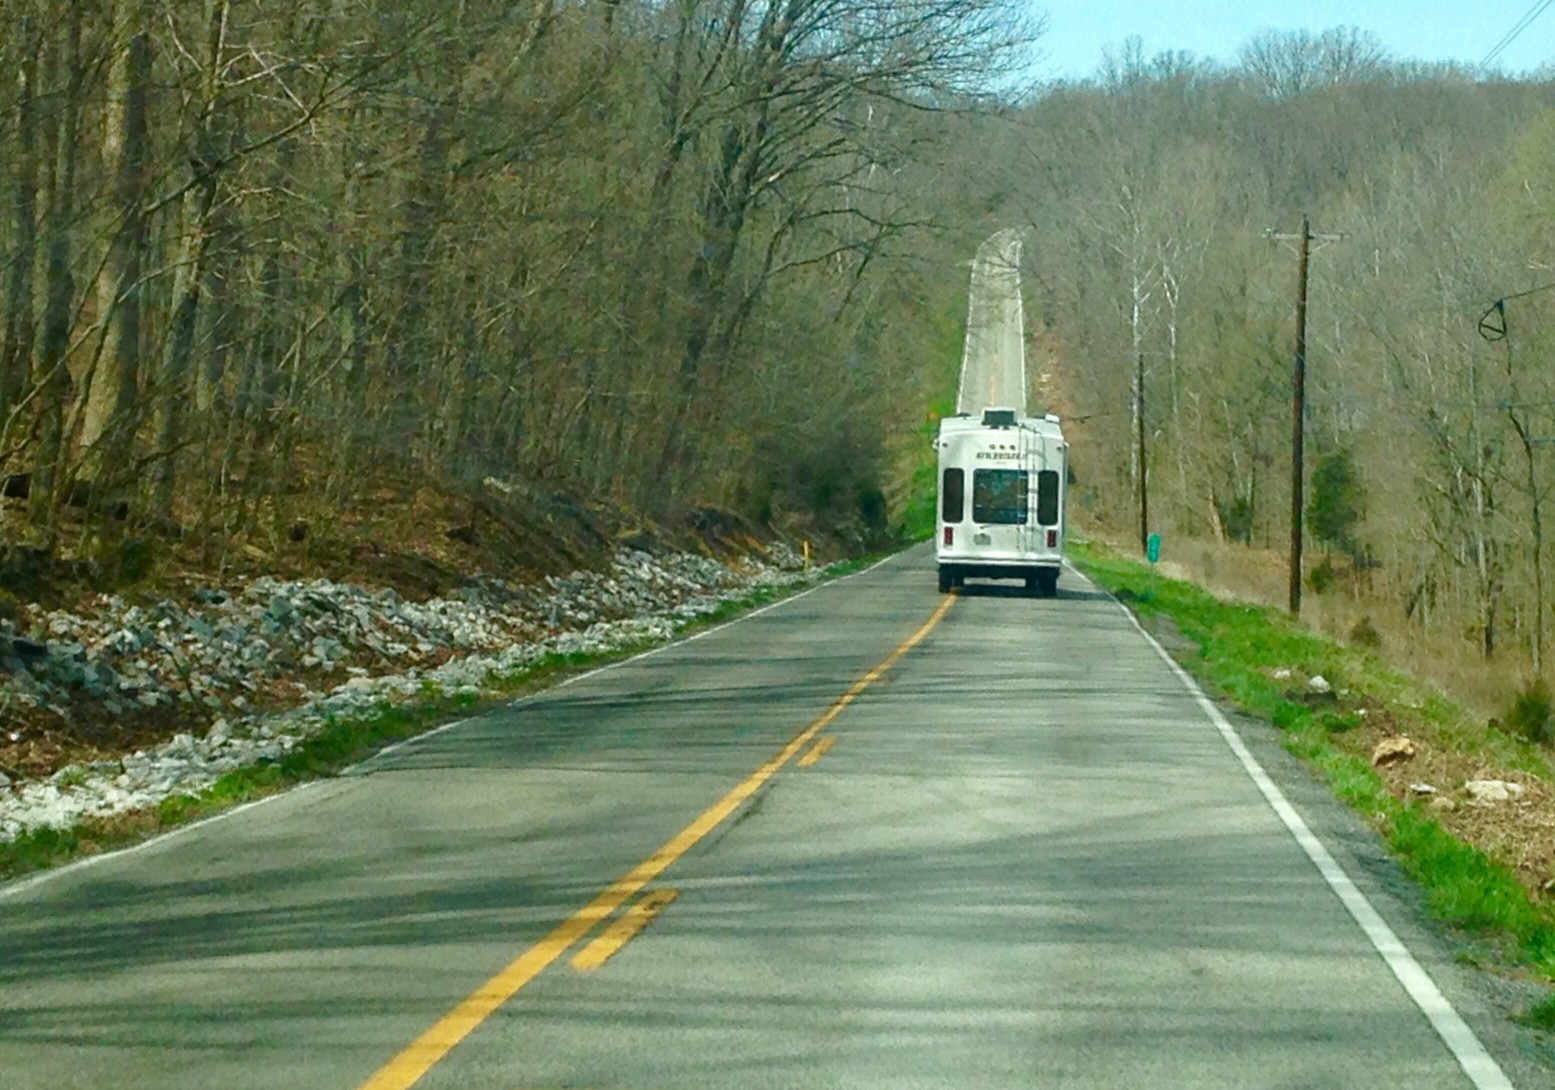 Is It OK To Tow A Camper Without Trailer Brakes?